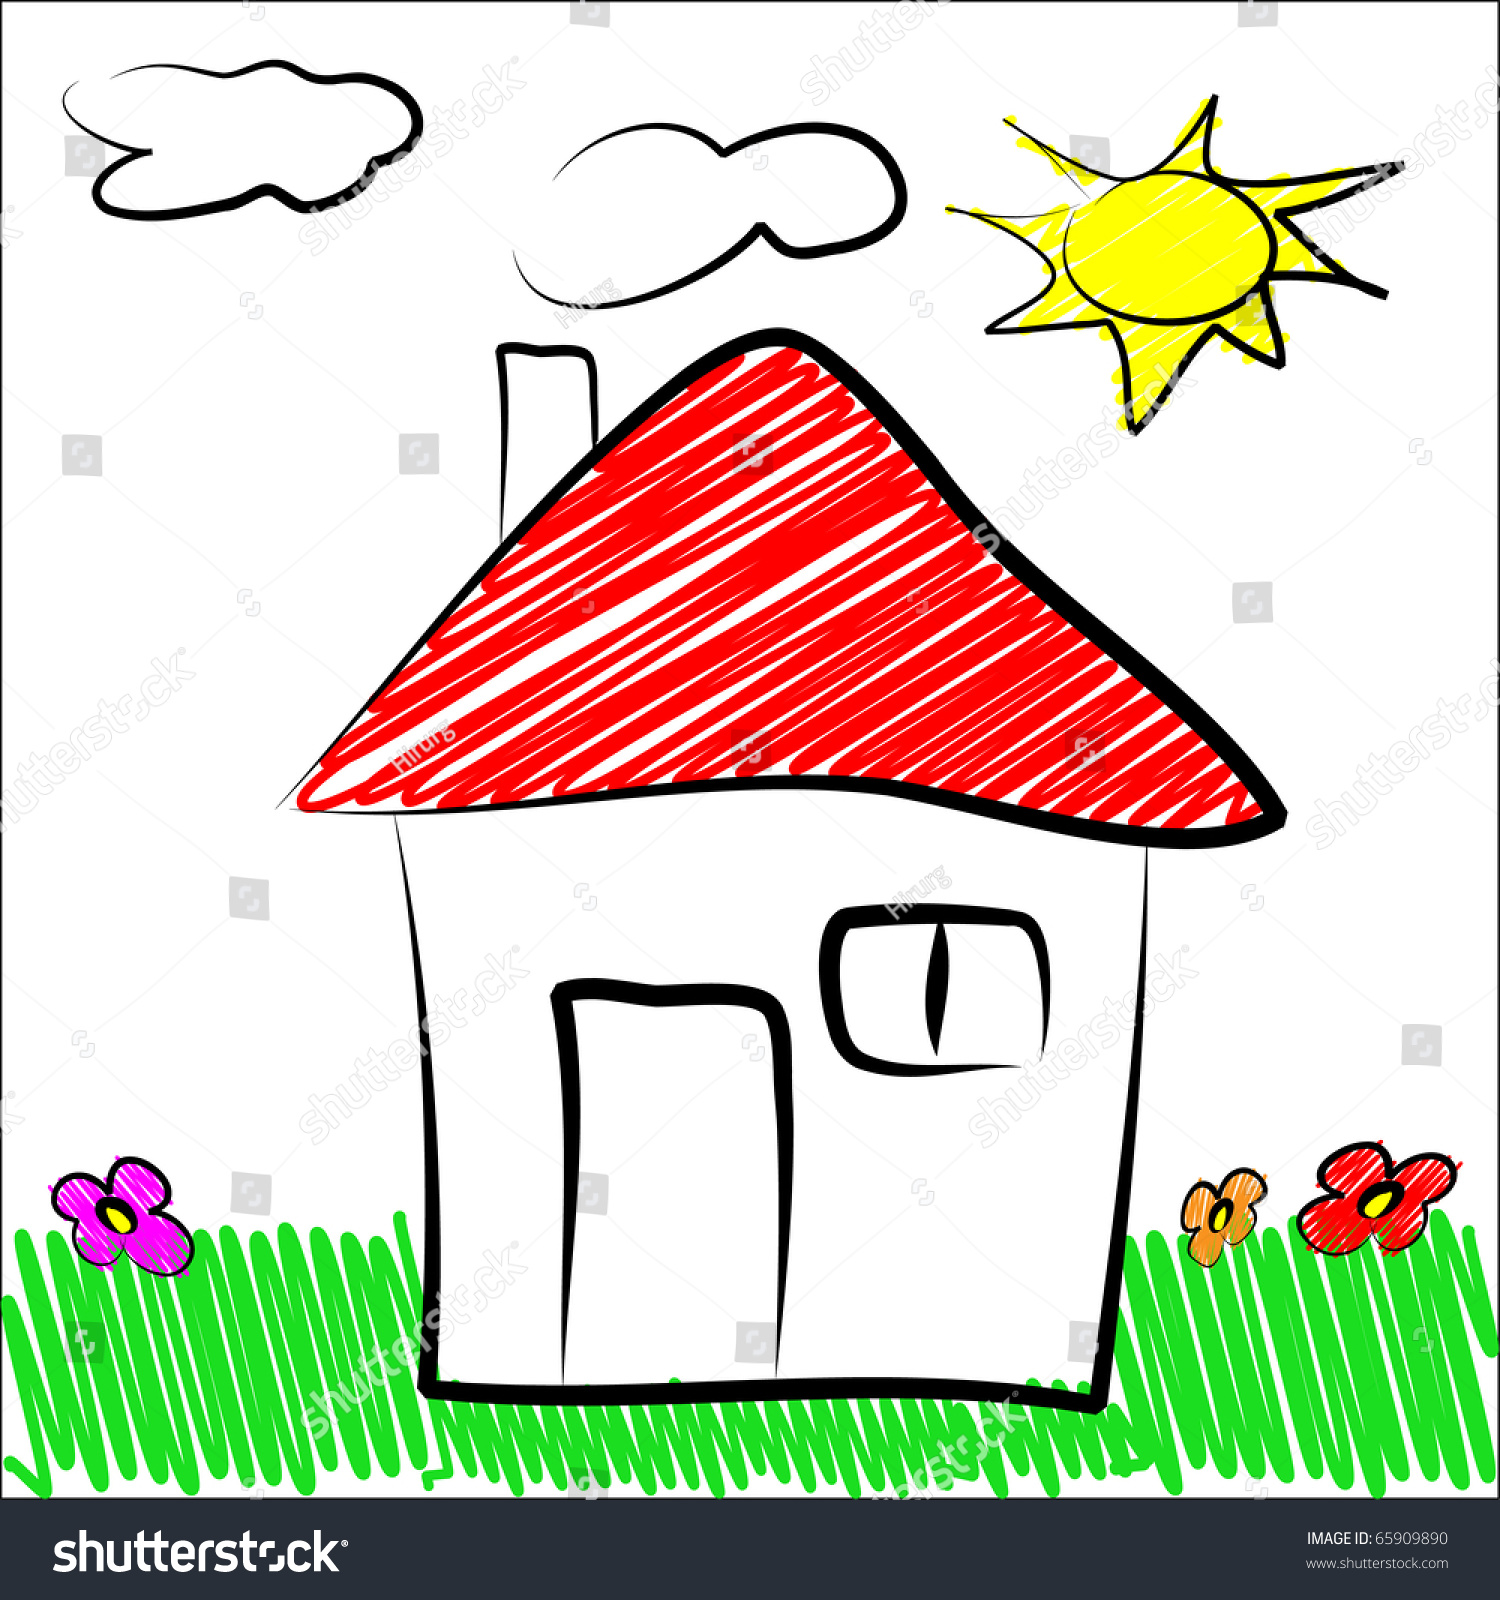 how to draw a 2d house ms paint